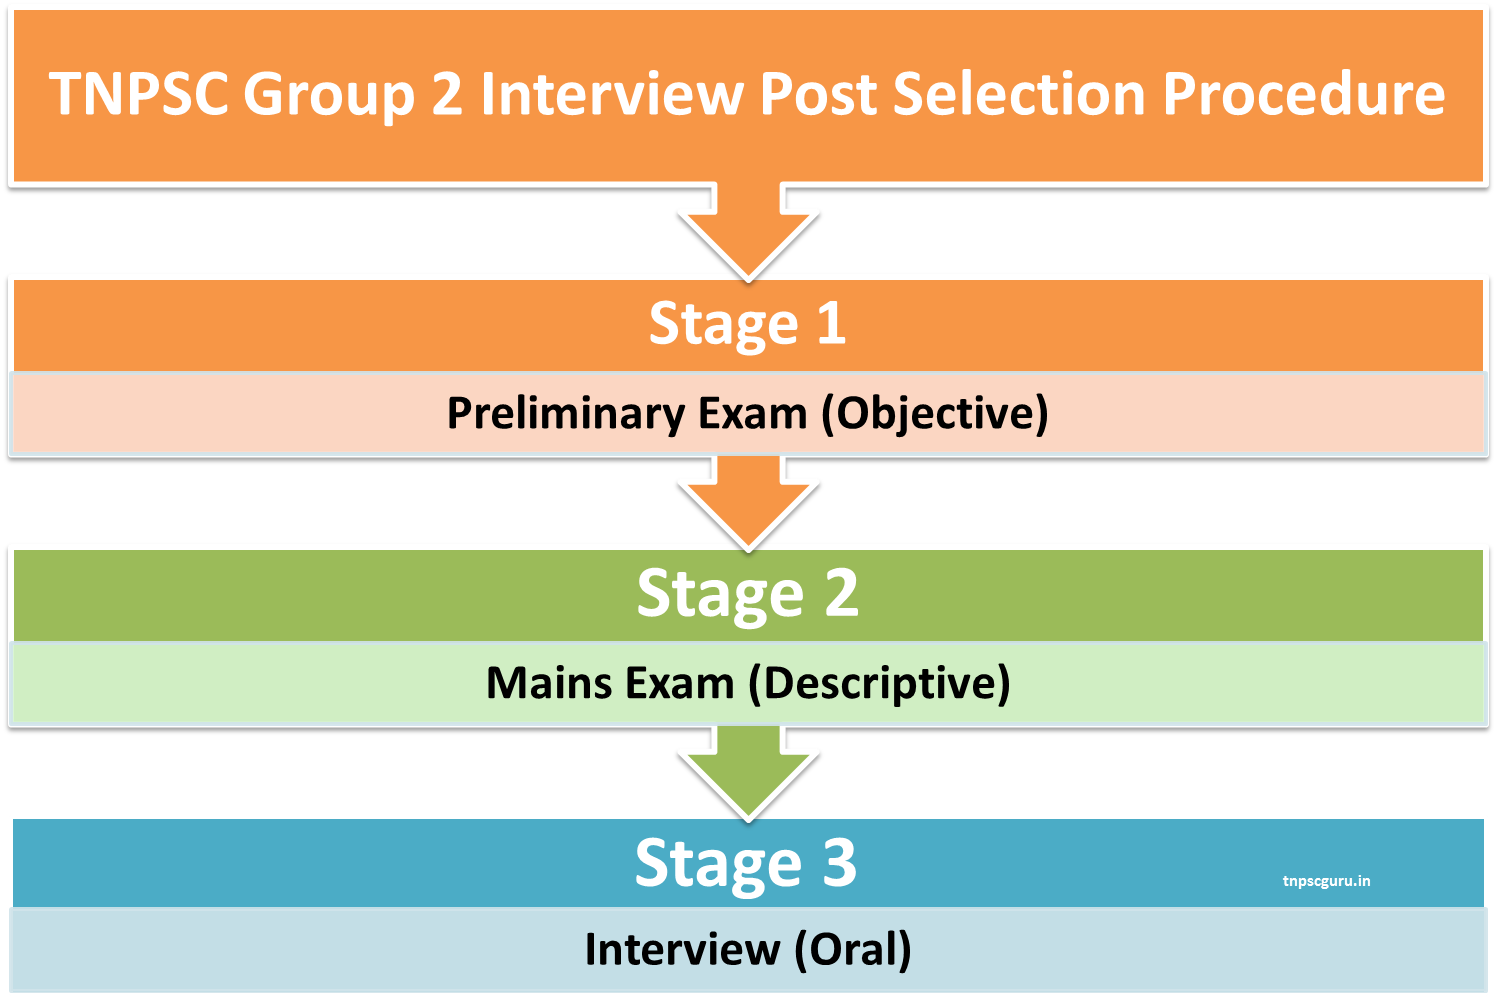 TNPSC Group 2 Interview Post Selection Process